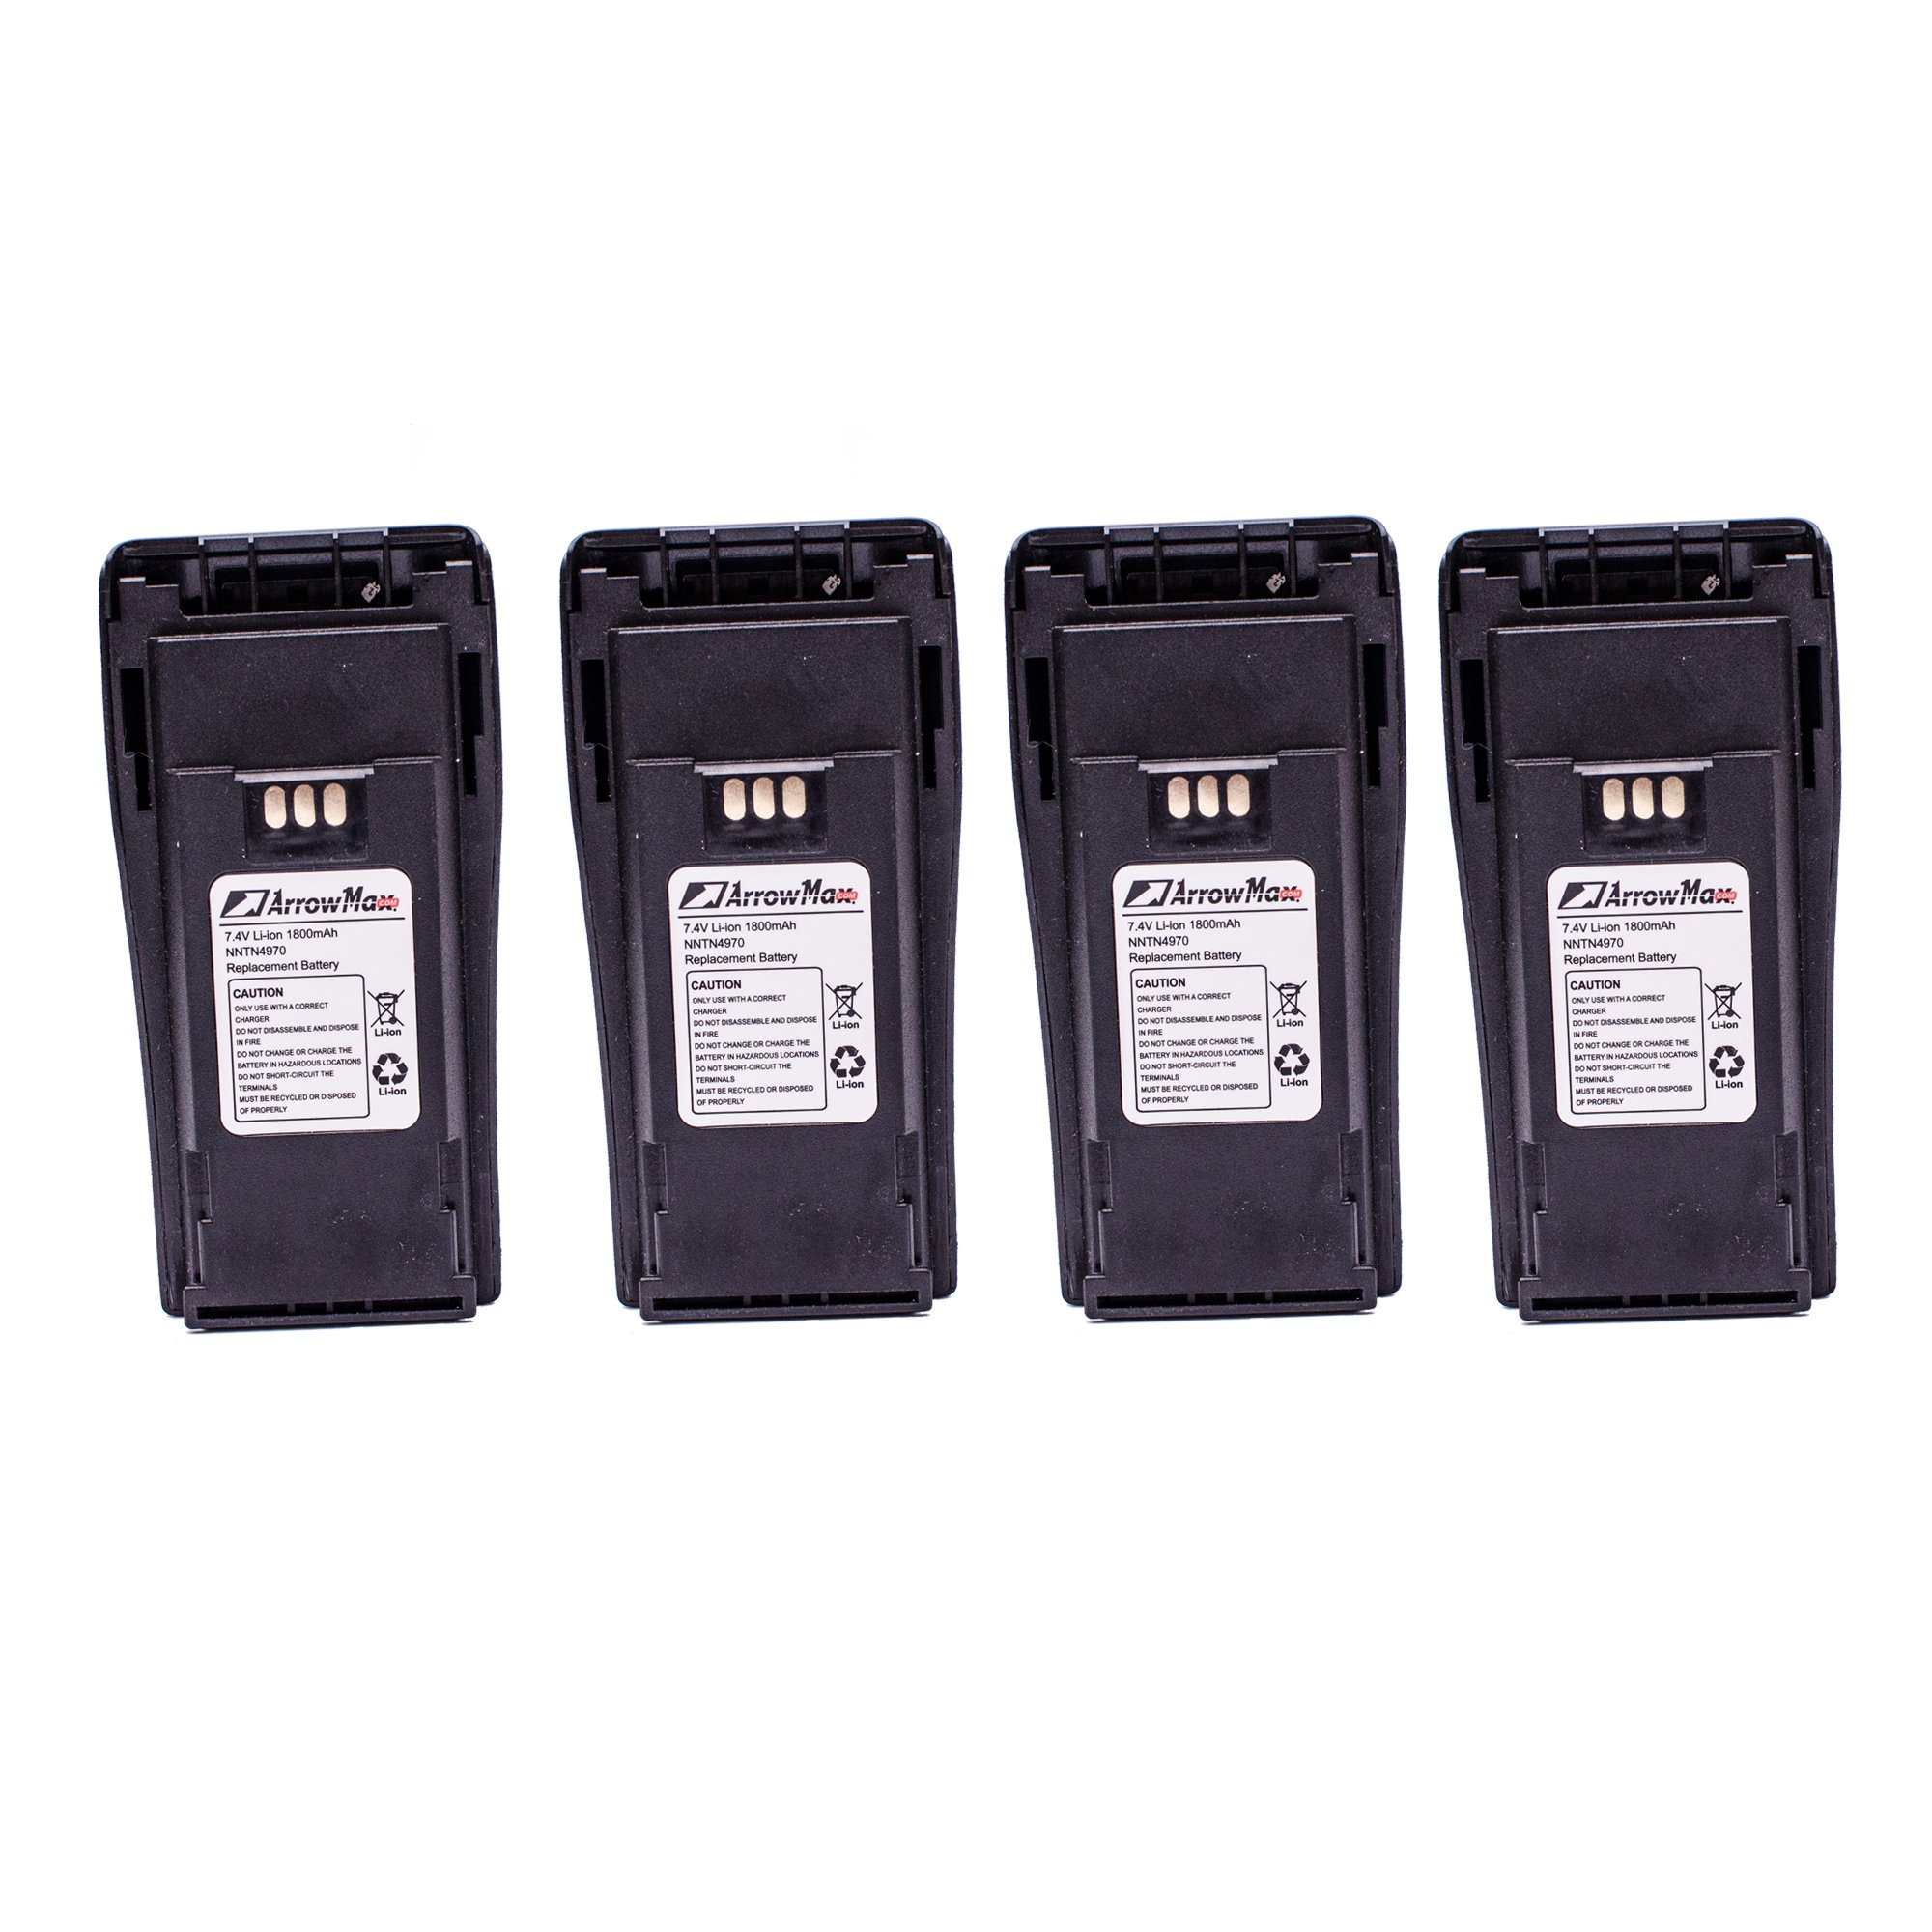 4 Pack ArrowMax AMCL4970-1800-D NNTN4970 Replacement Li-ion 1800mAh Slim Battery for Motorola CP200 CP200XLS CP200D